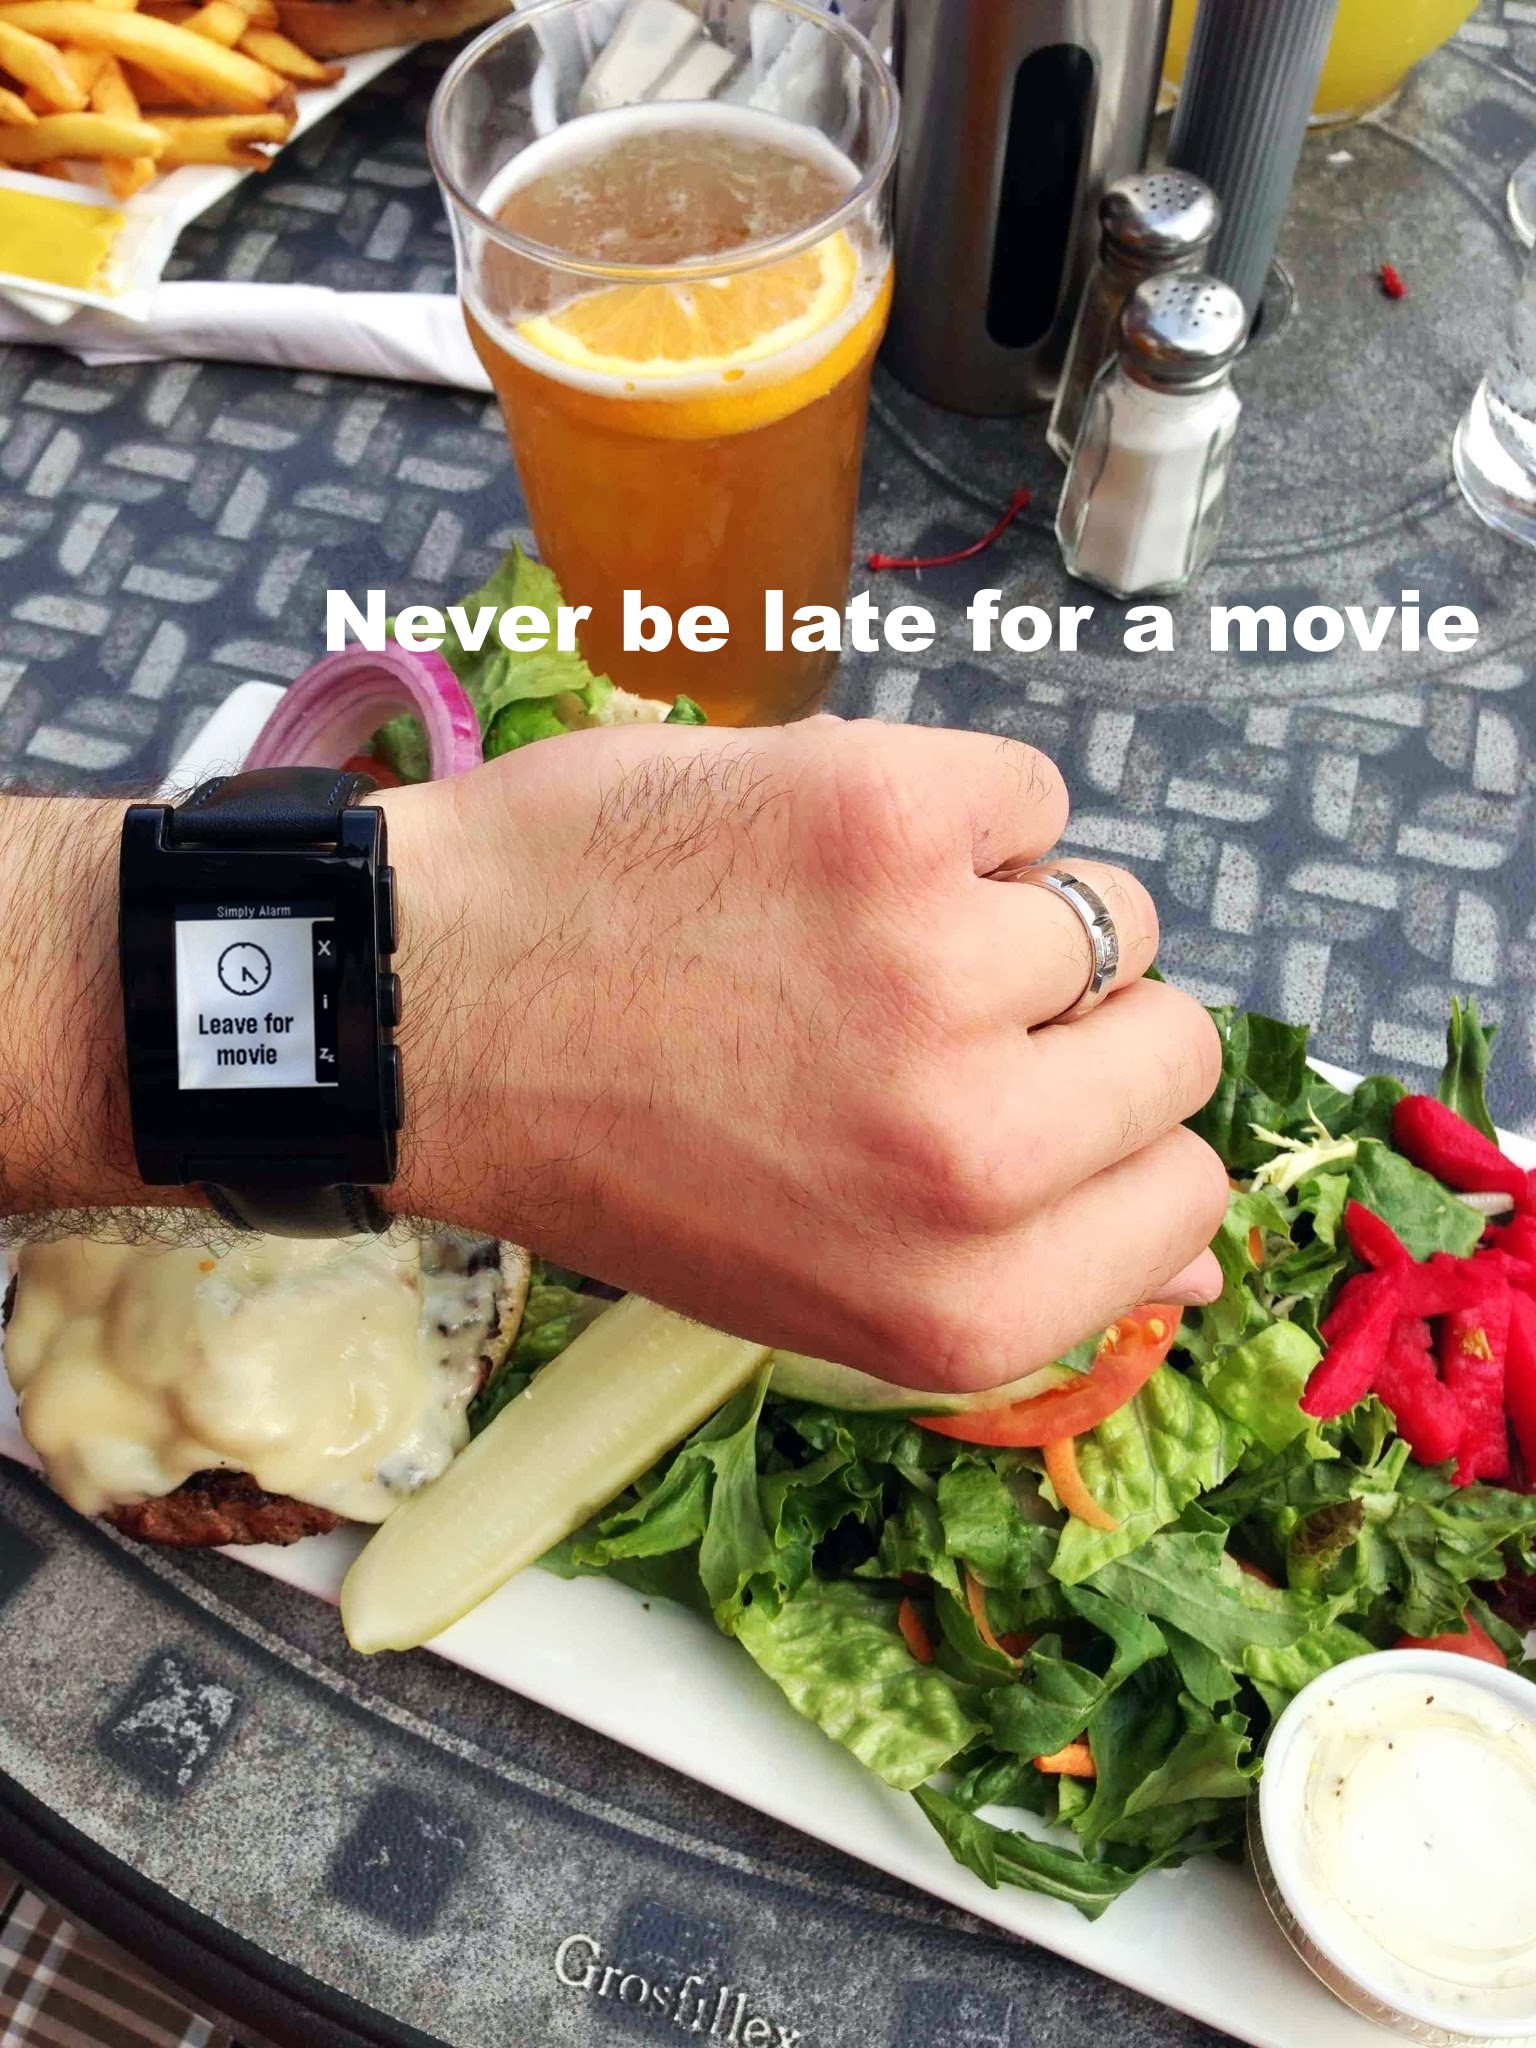 Never be late